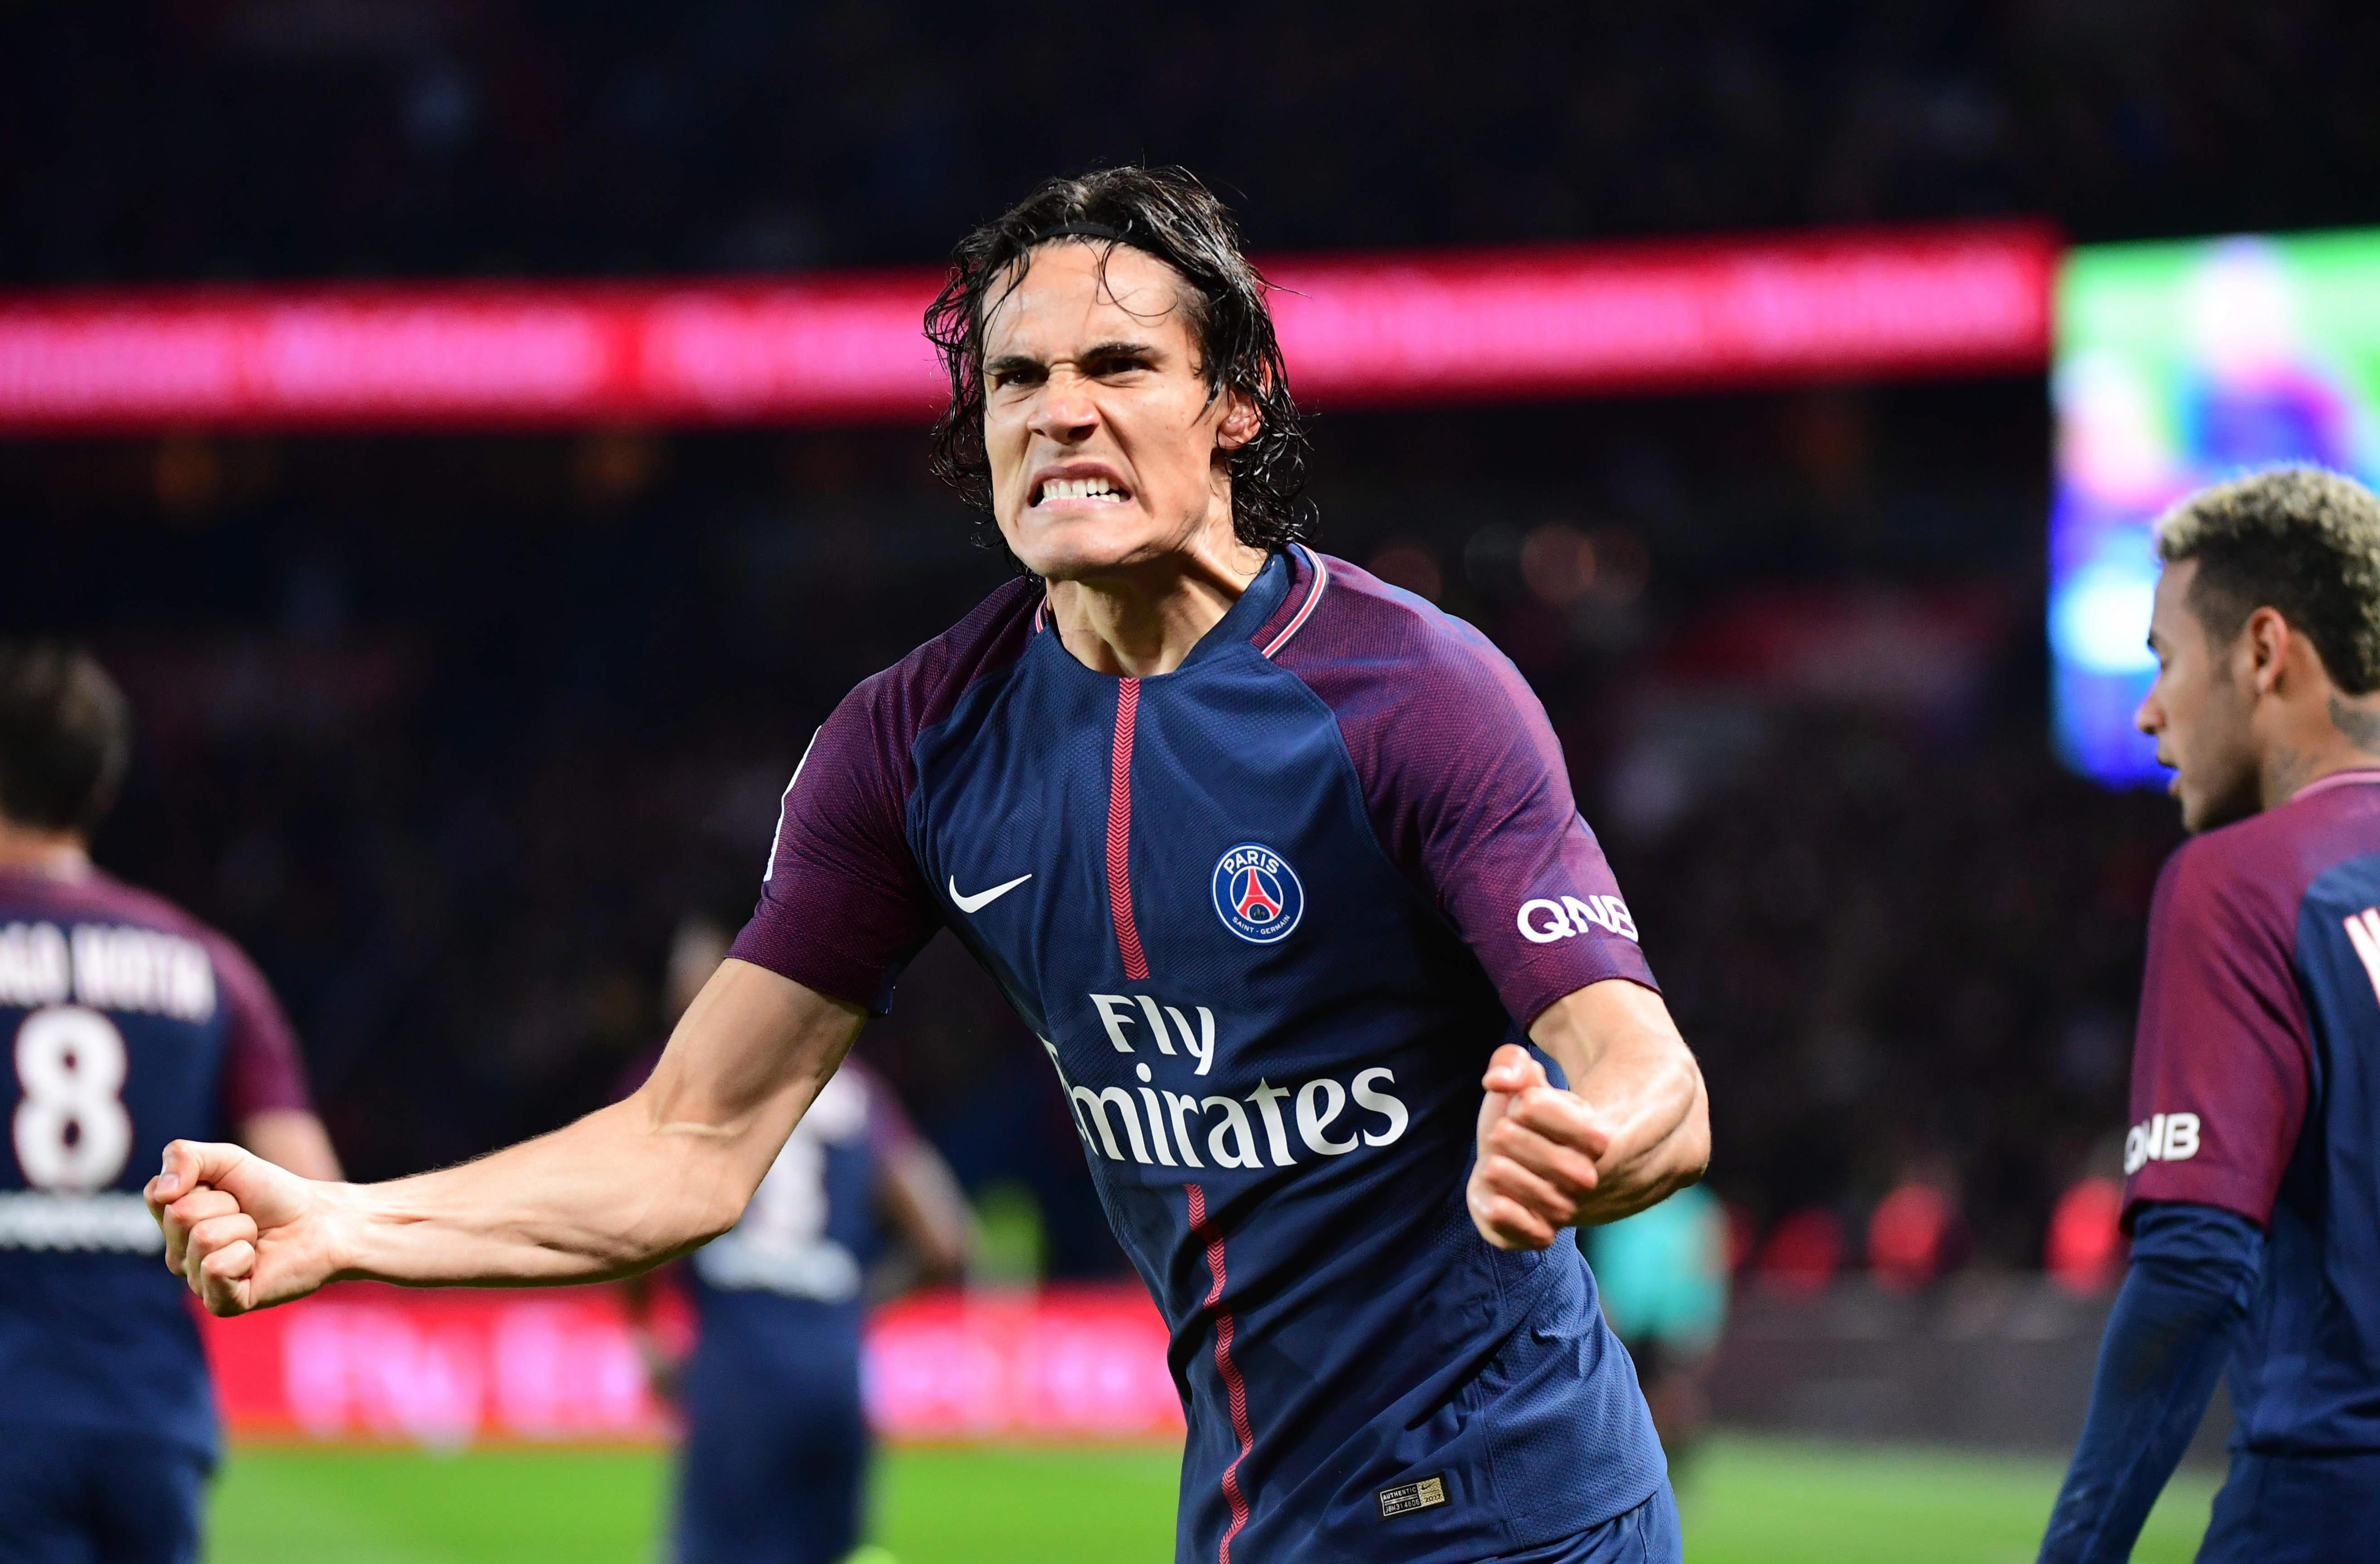 Cavani will be eyeing up another Golden Boot